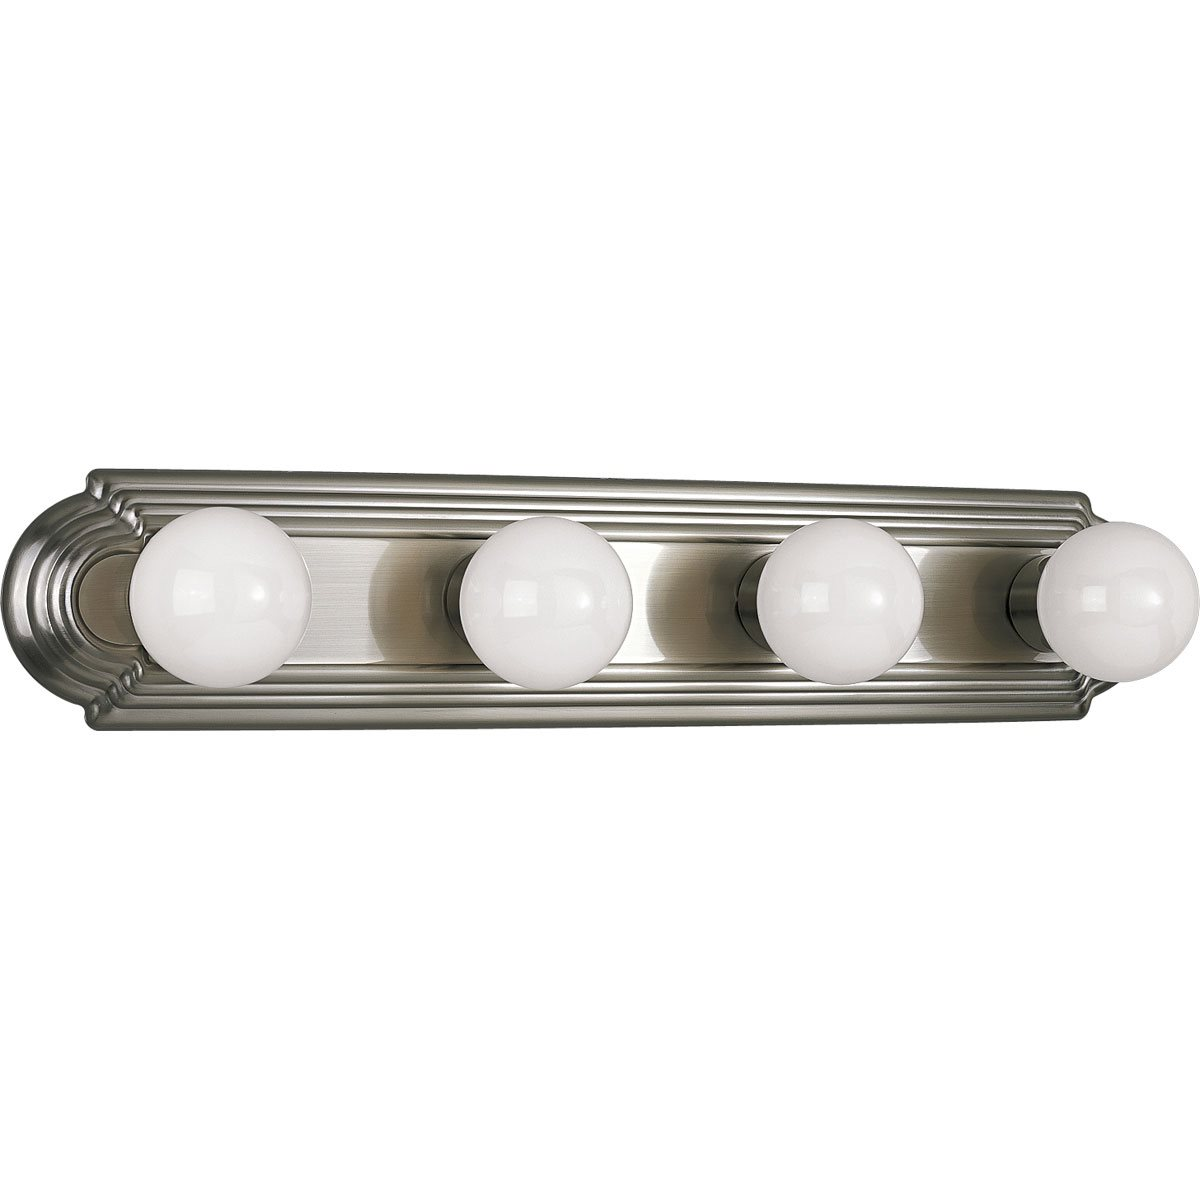 Vanity Light Bar With Switch : Progress Lighting P3025 Open Face Transitional Bathroom / Vanity Light Bar PG-P3025